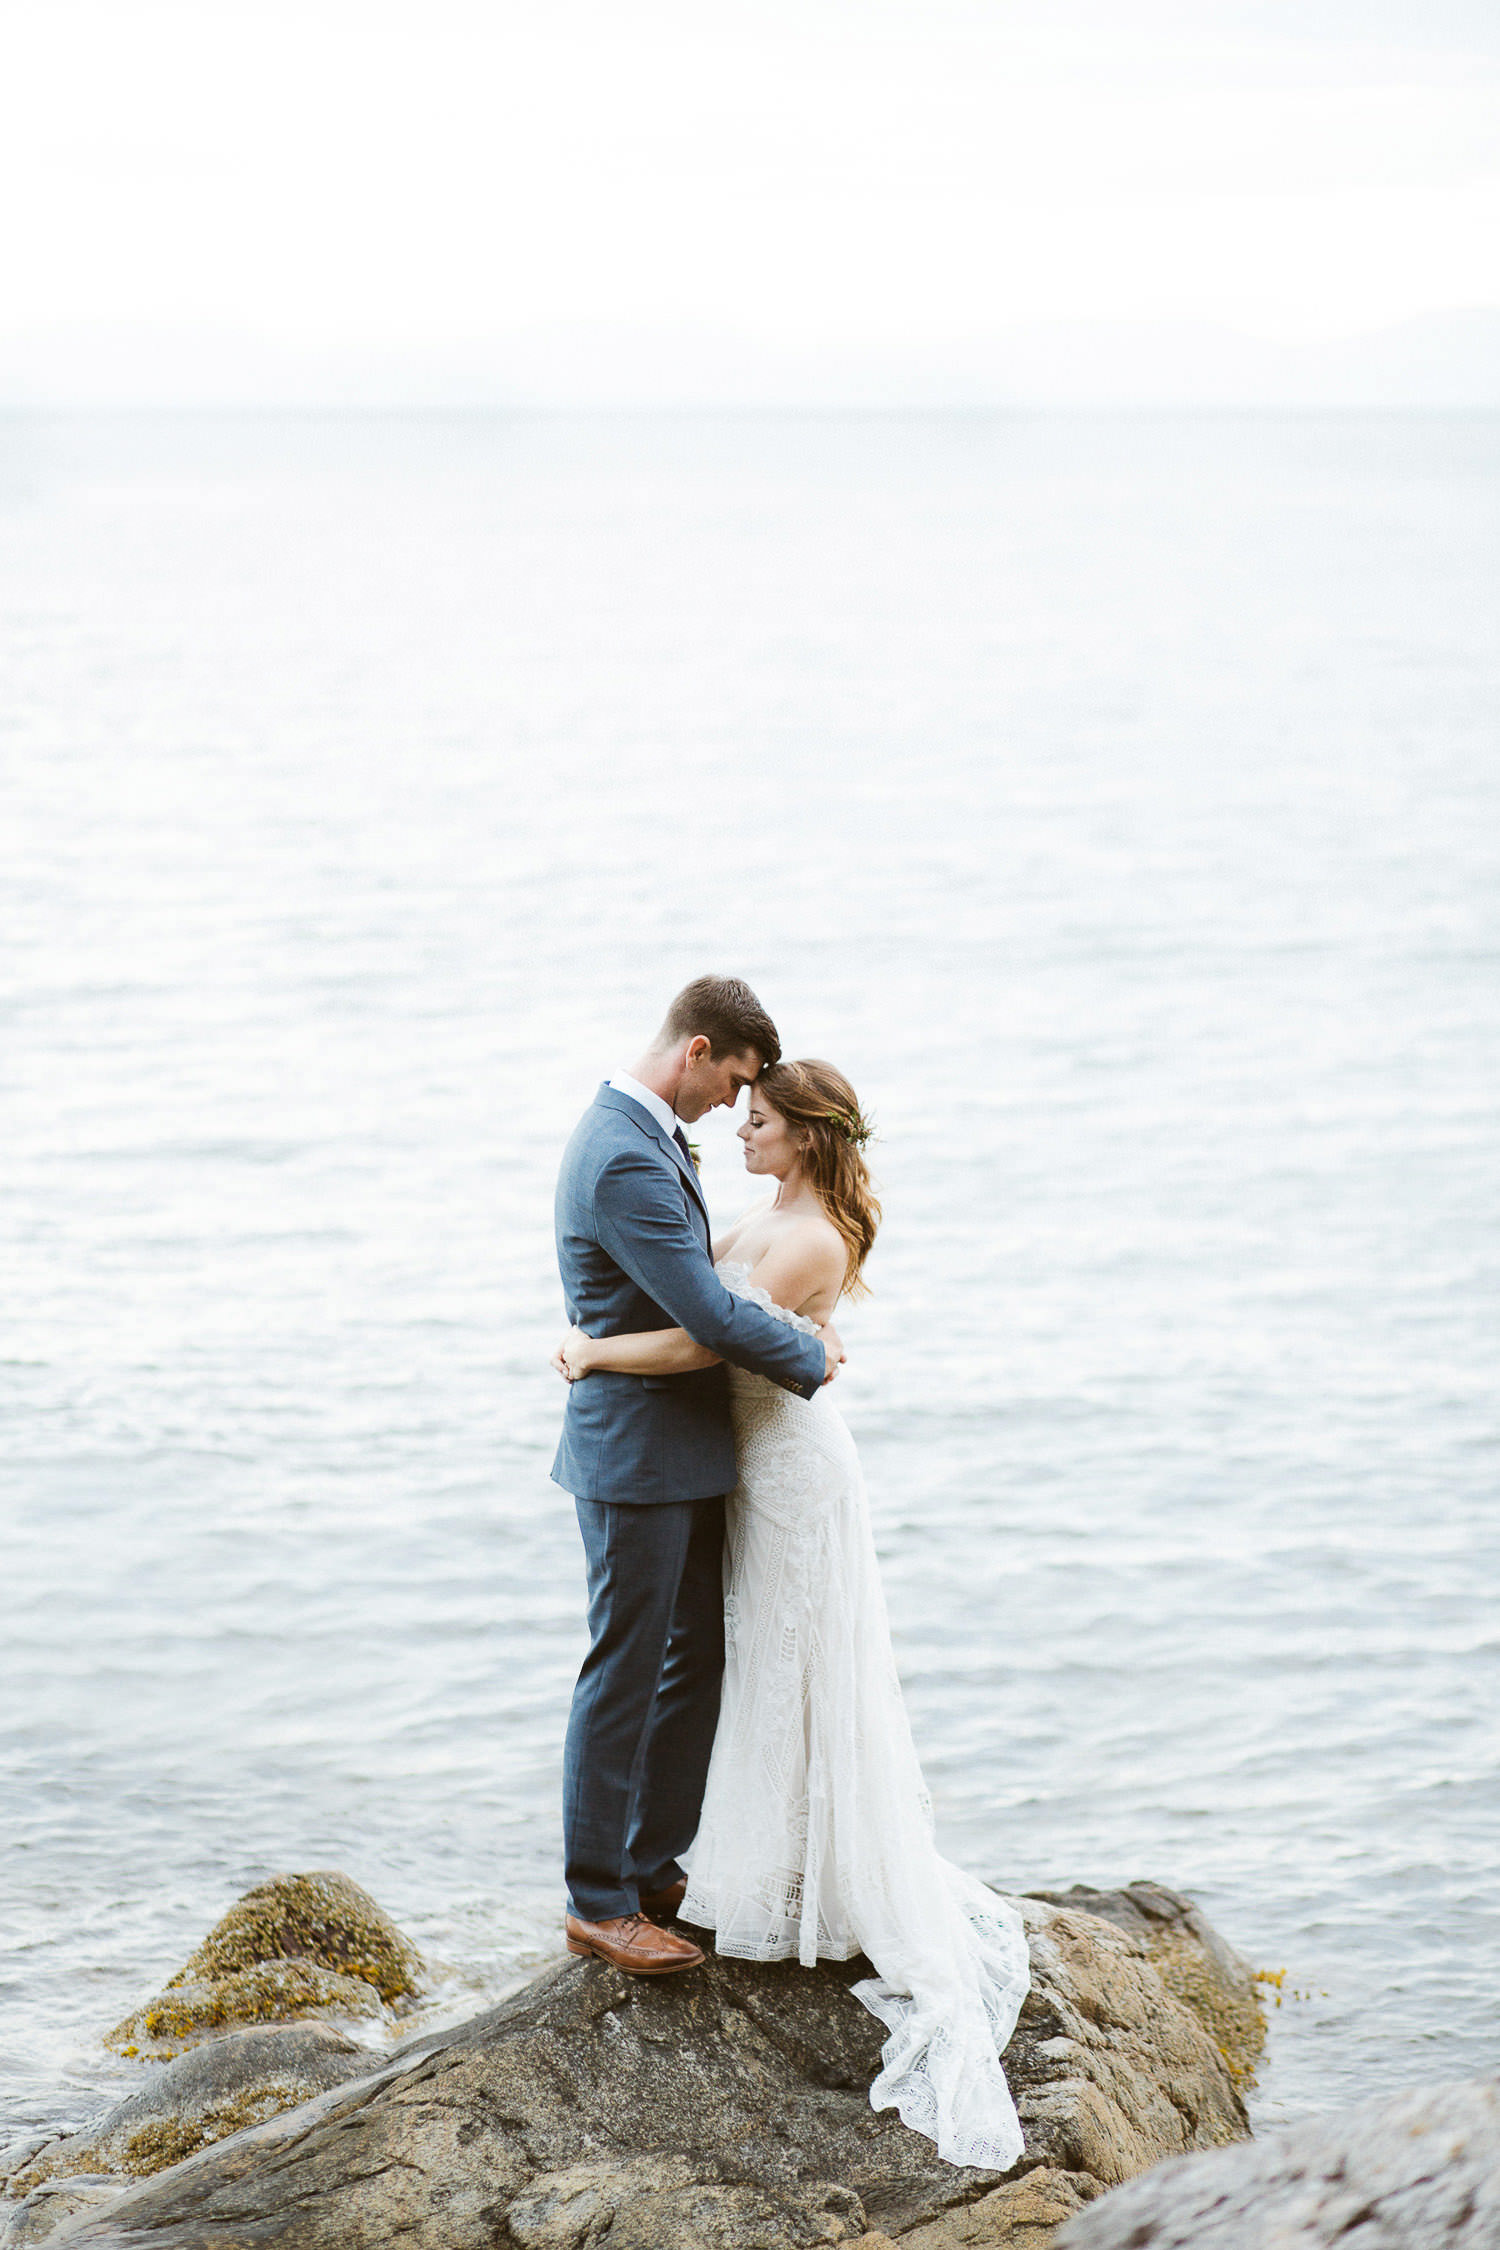 Romantic & Intimate boho wedding with a gorgeous Rue De Seine bride | Photo: Camilla Anchisi